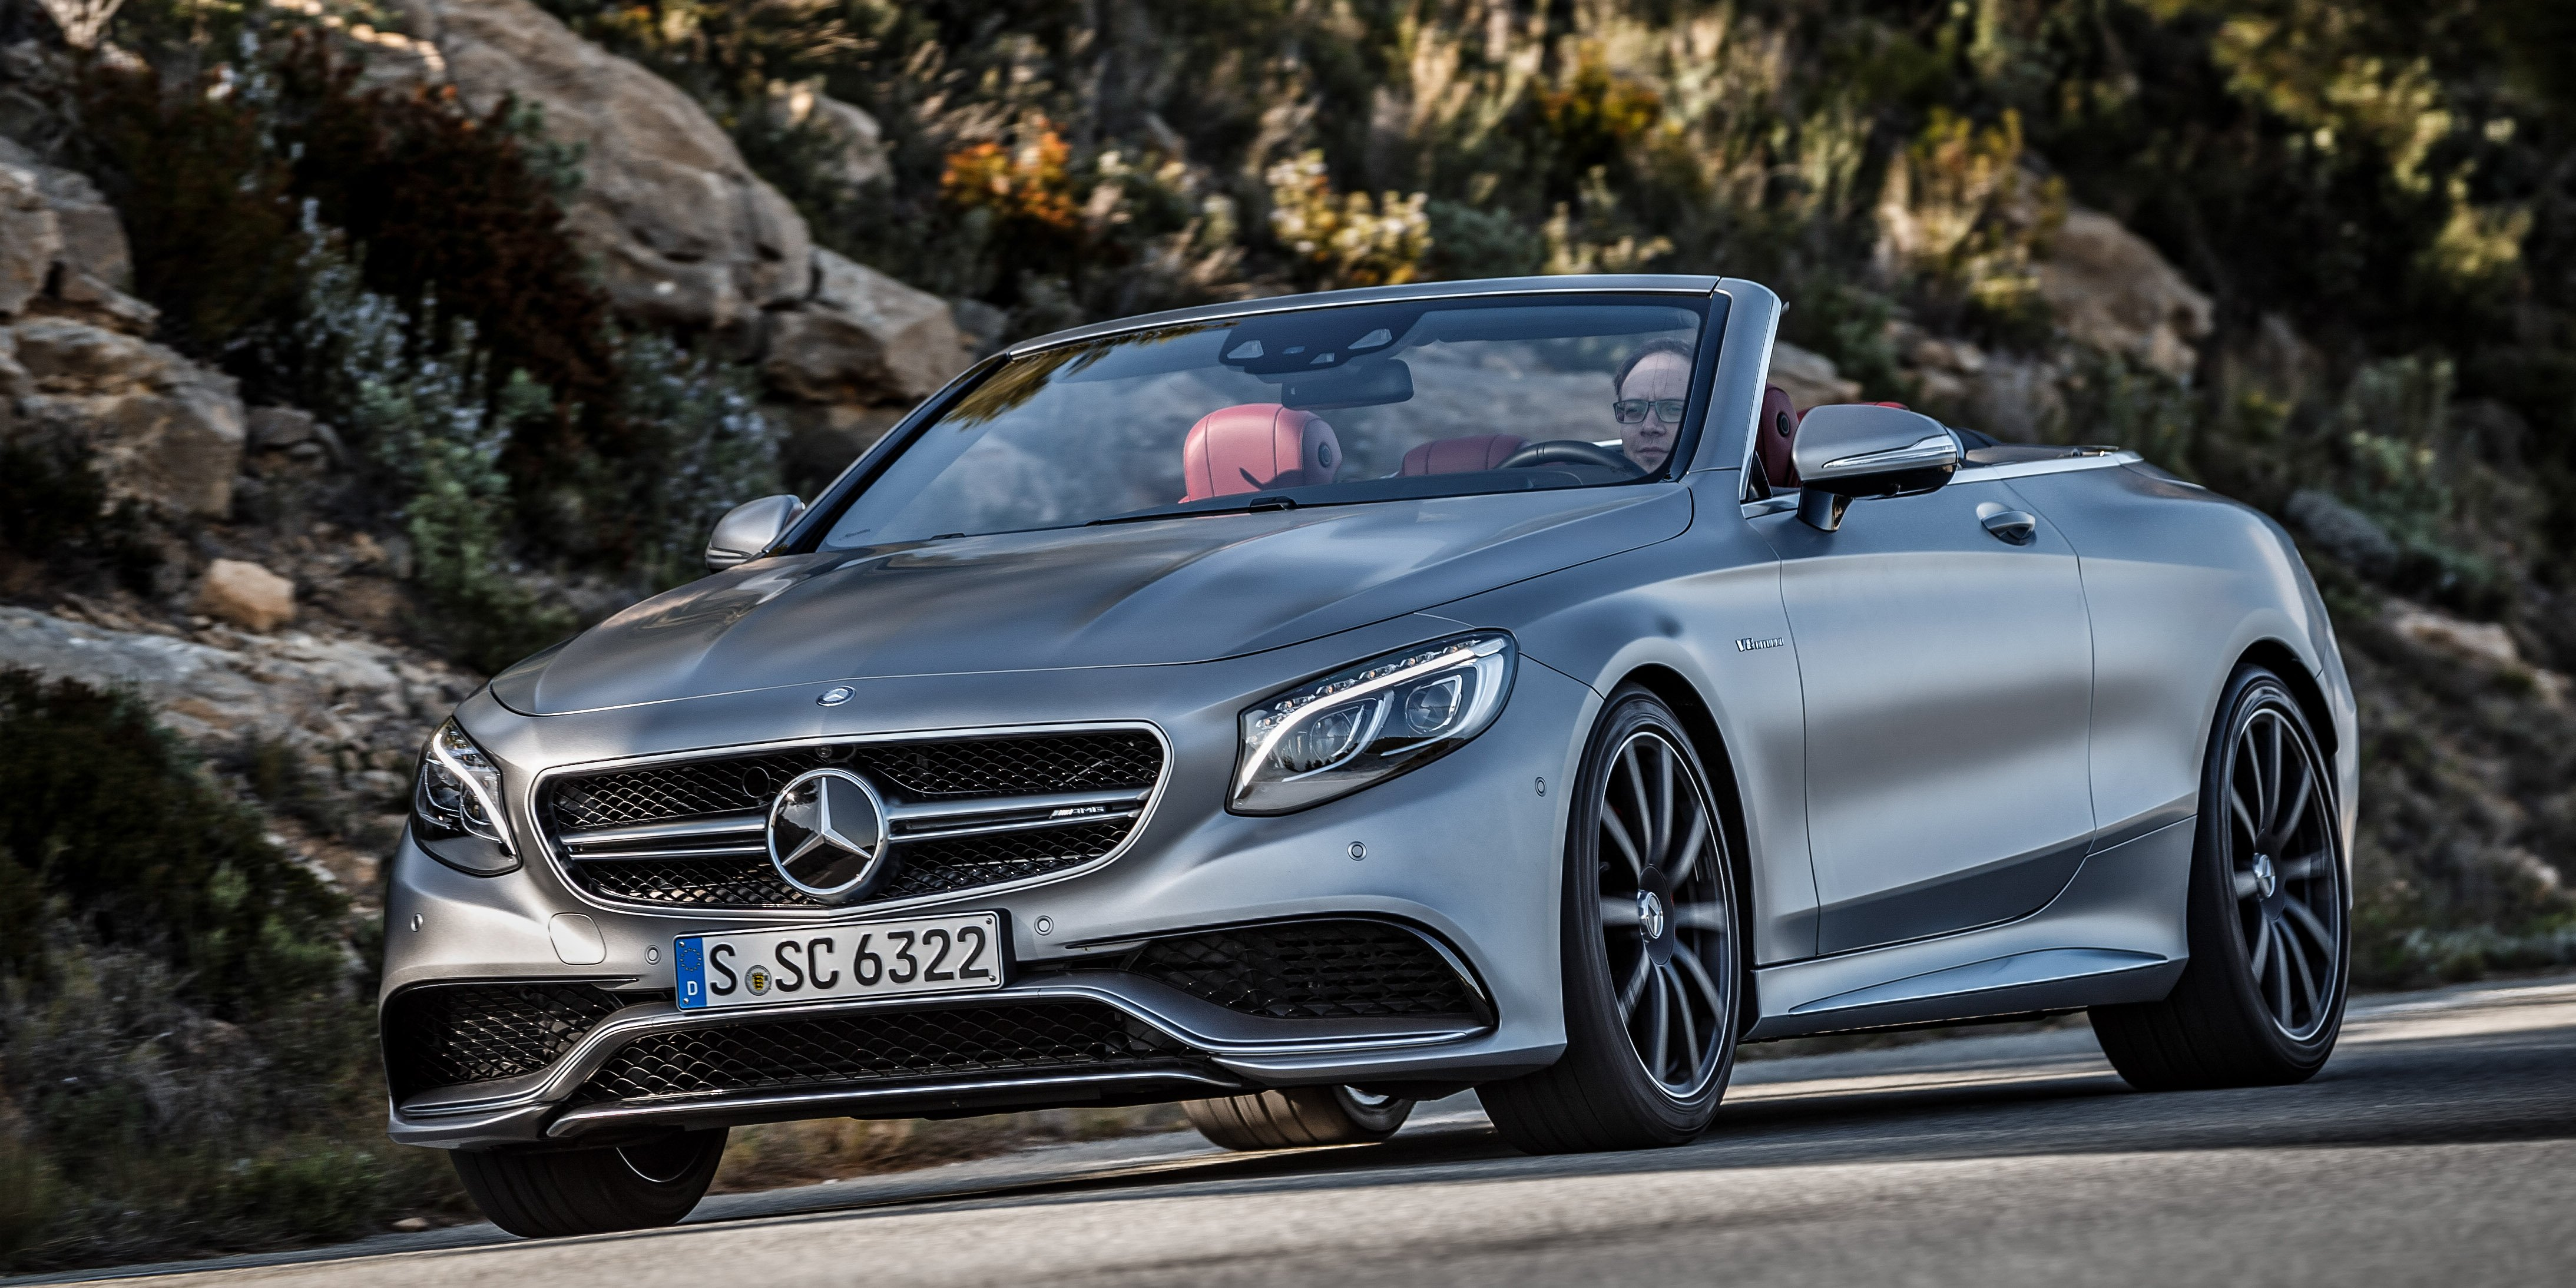 Mercedes S-Class Cabriolet (A217) mod specifications